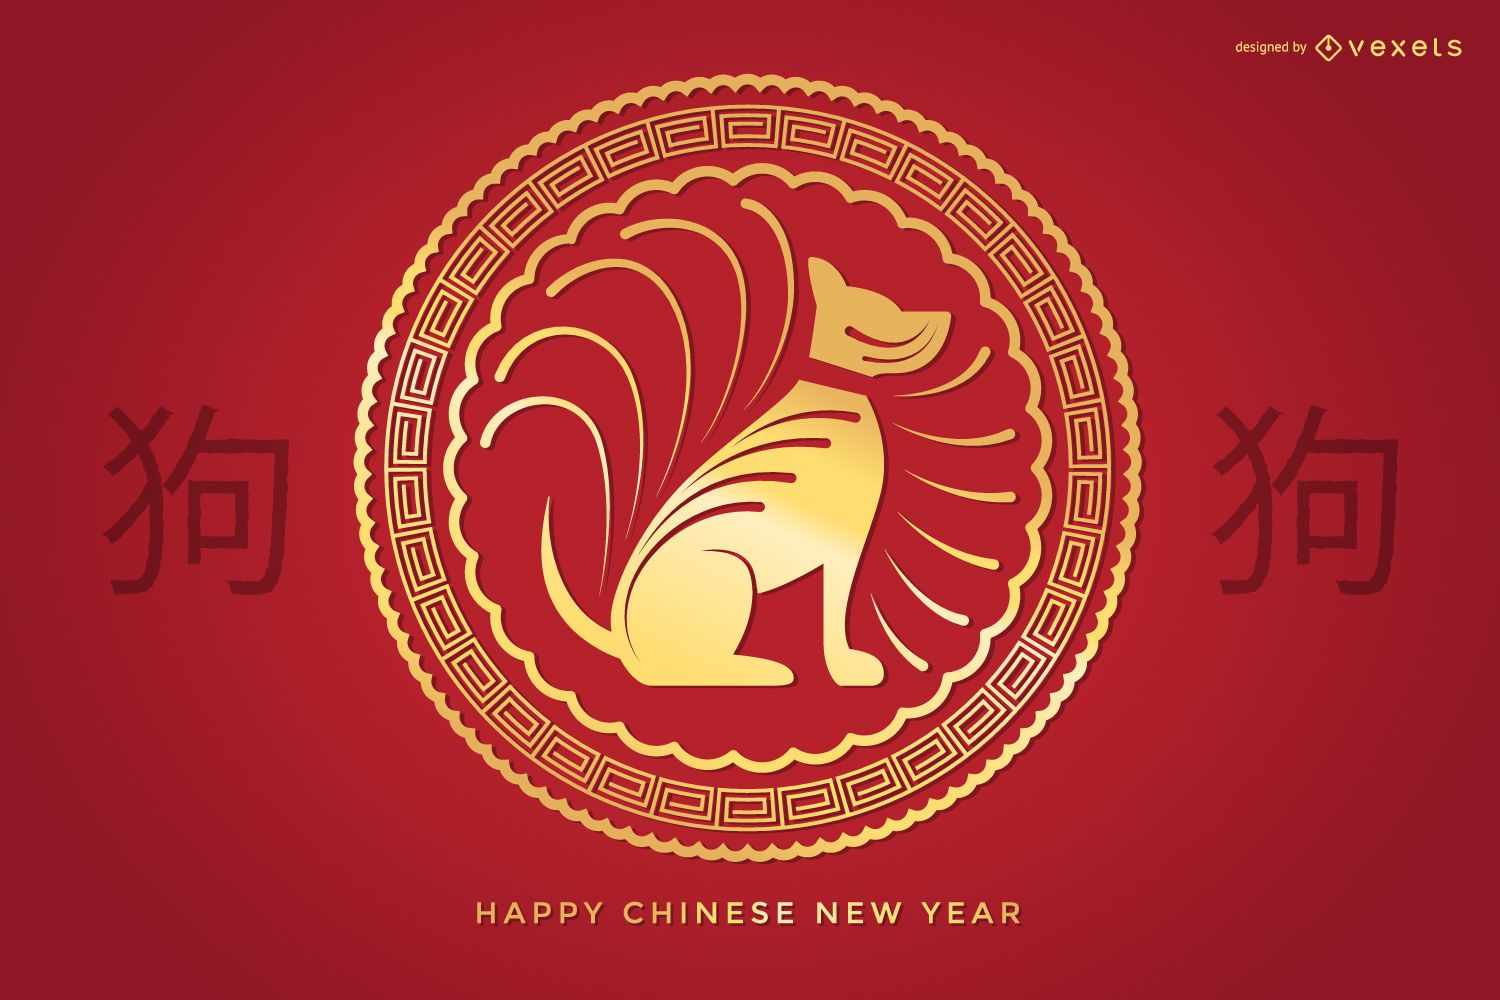 golden chinese new year sign download large image 1500x1000px license image user - Chinese New Year Sign